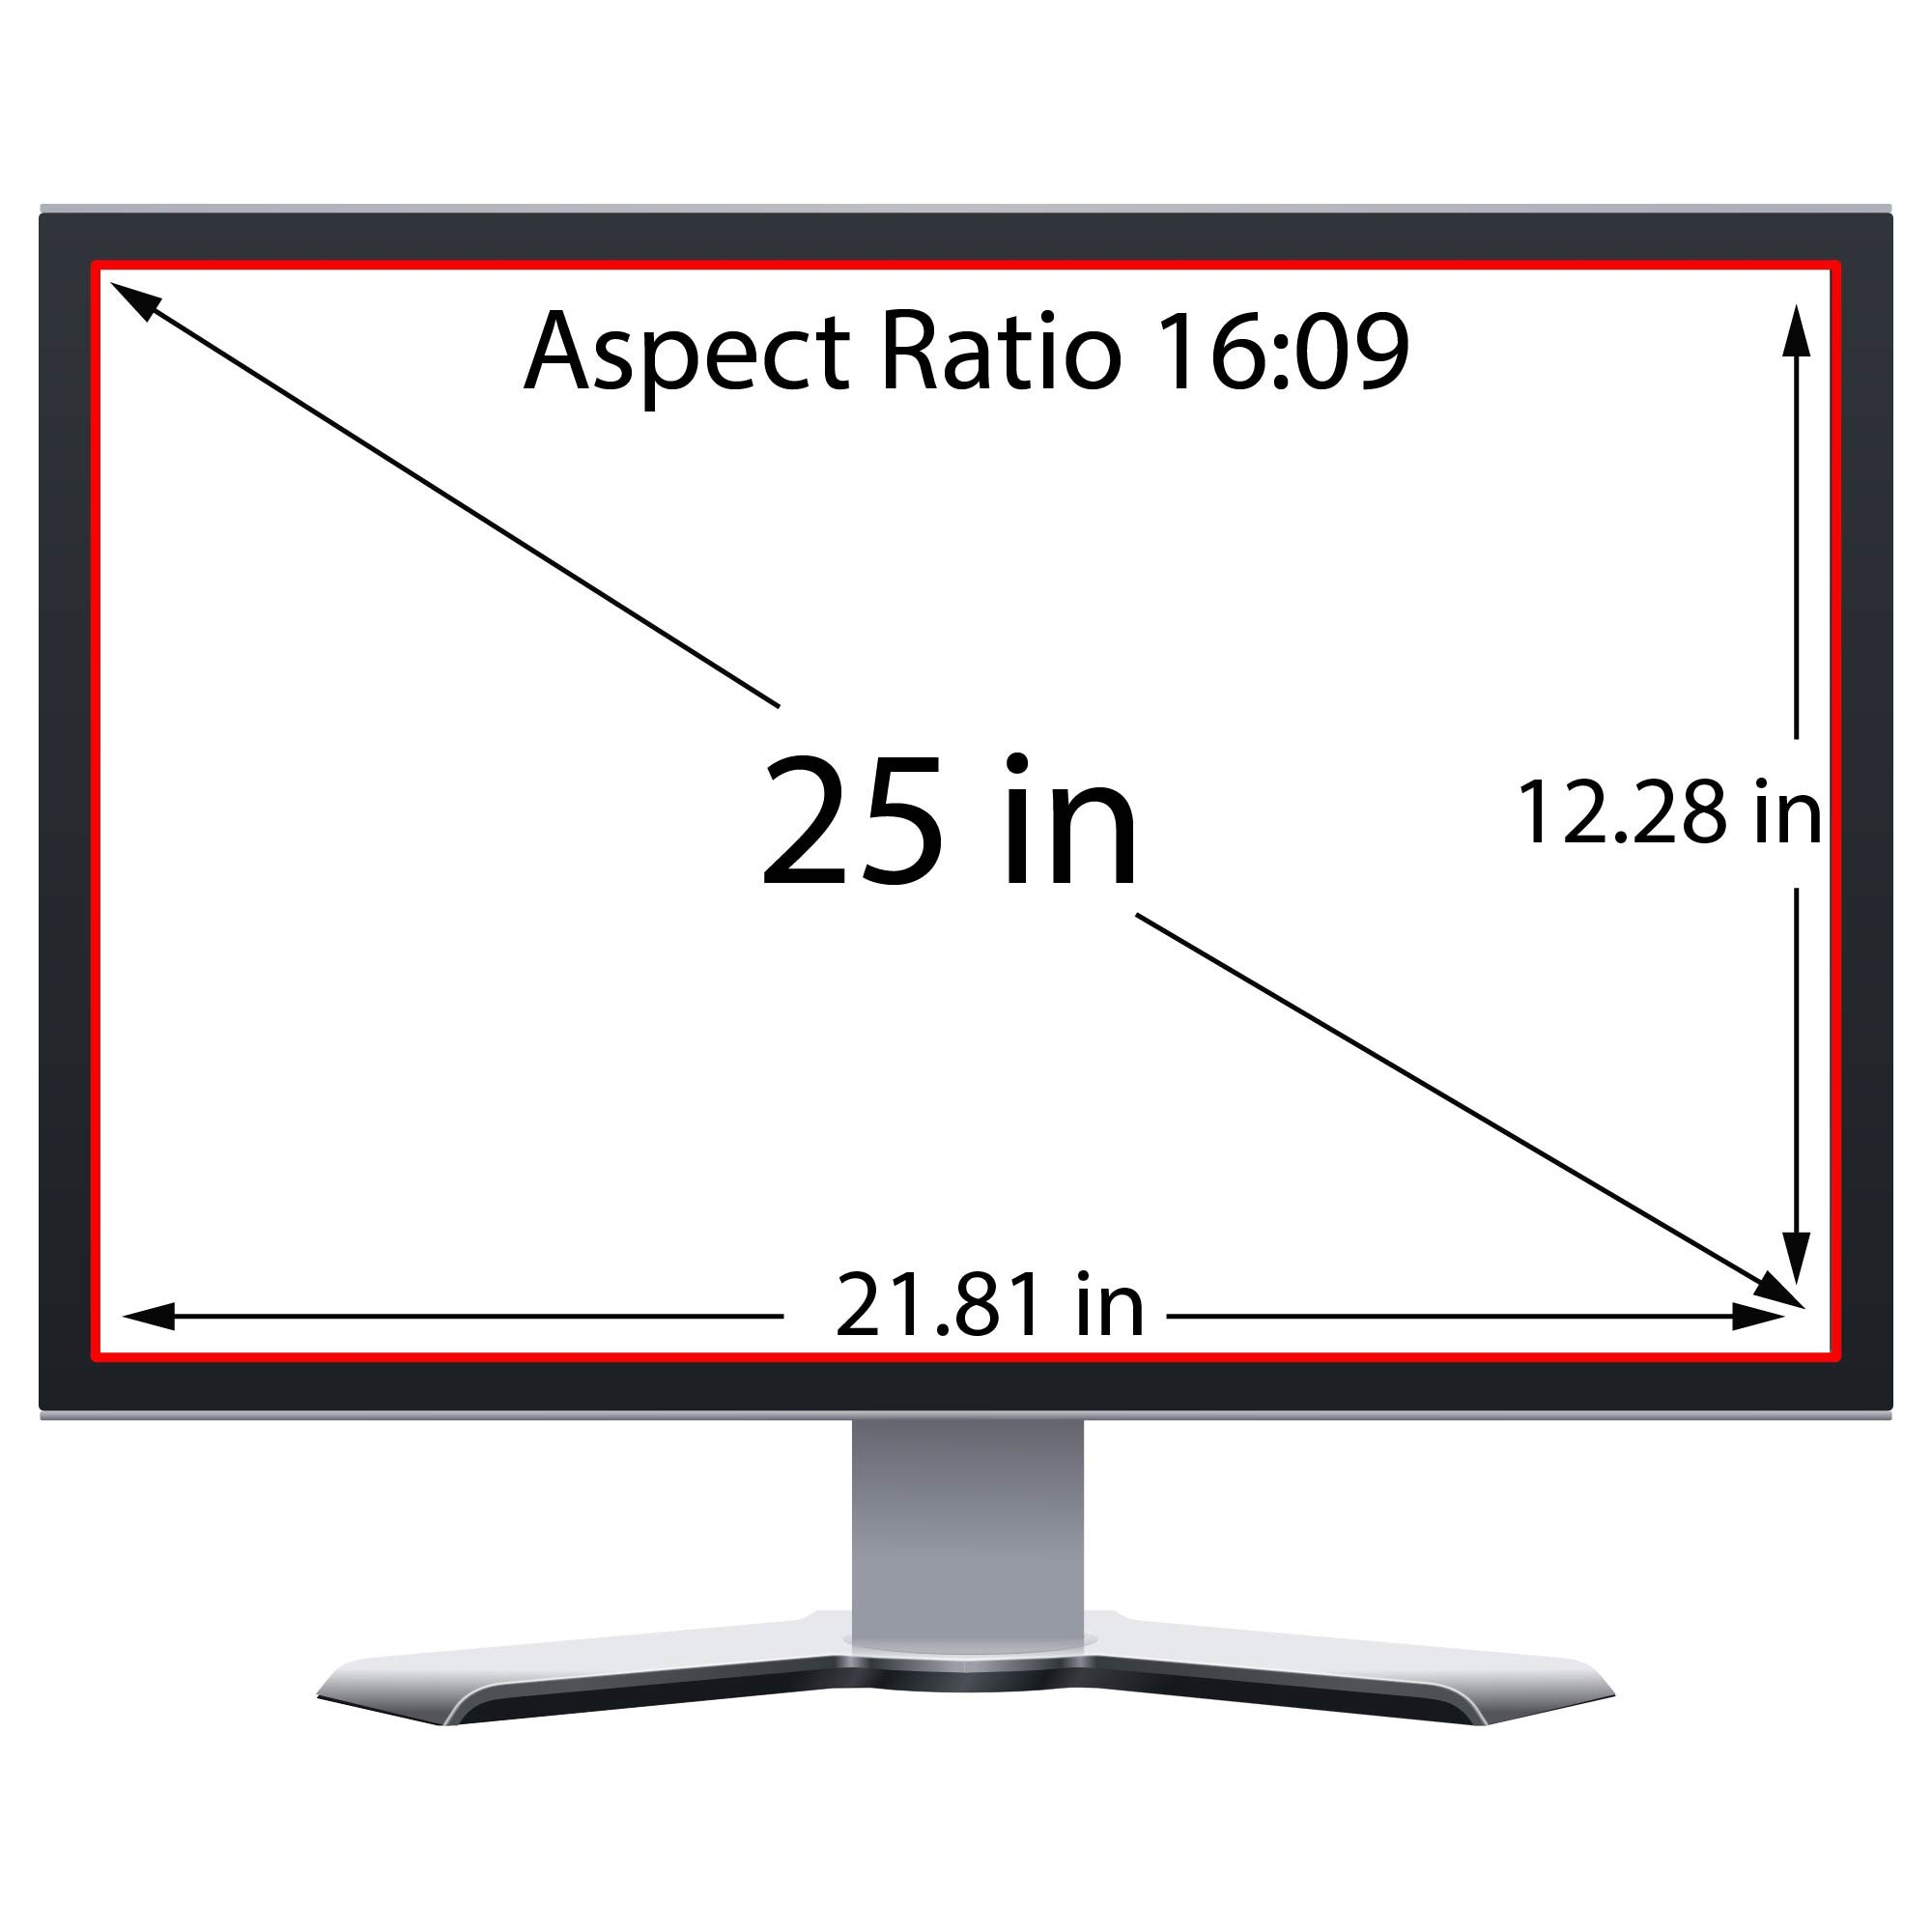 Privacy Screen Filter and Anti Glare for 25 Inches Desktop Computer Widescreen Monitor with Aspect Ratio 16:09 Please check Dimension Carefully